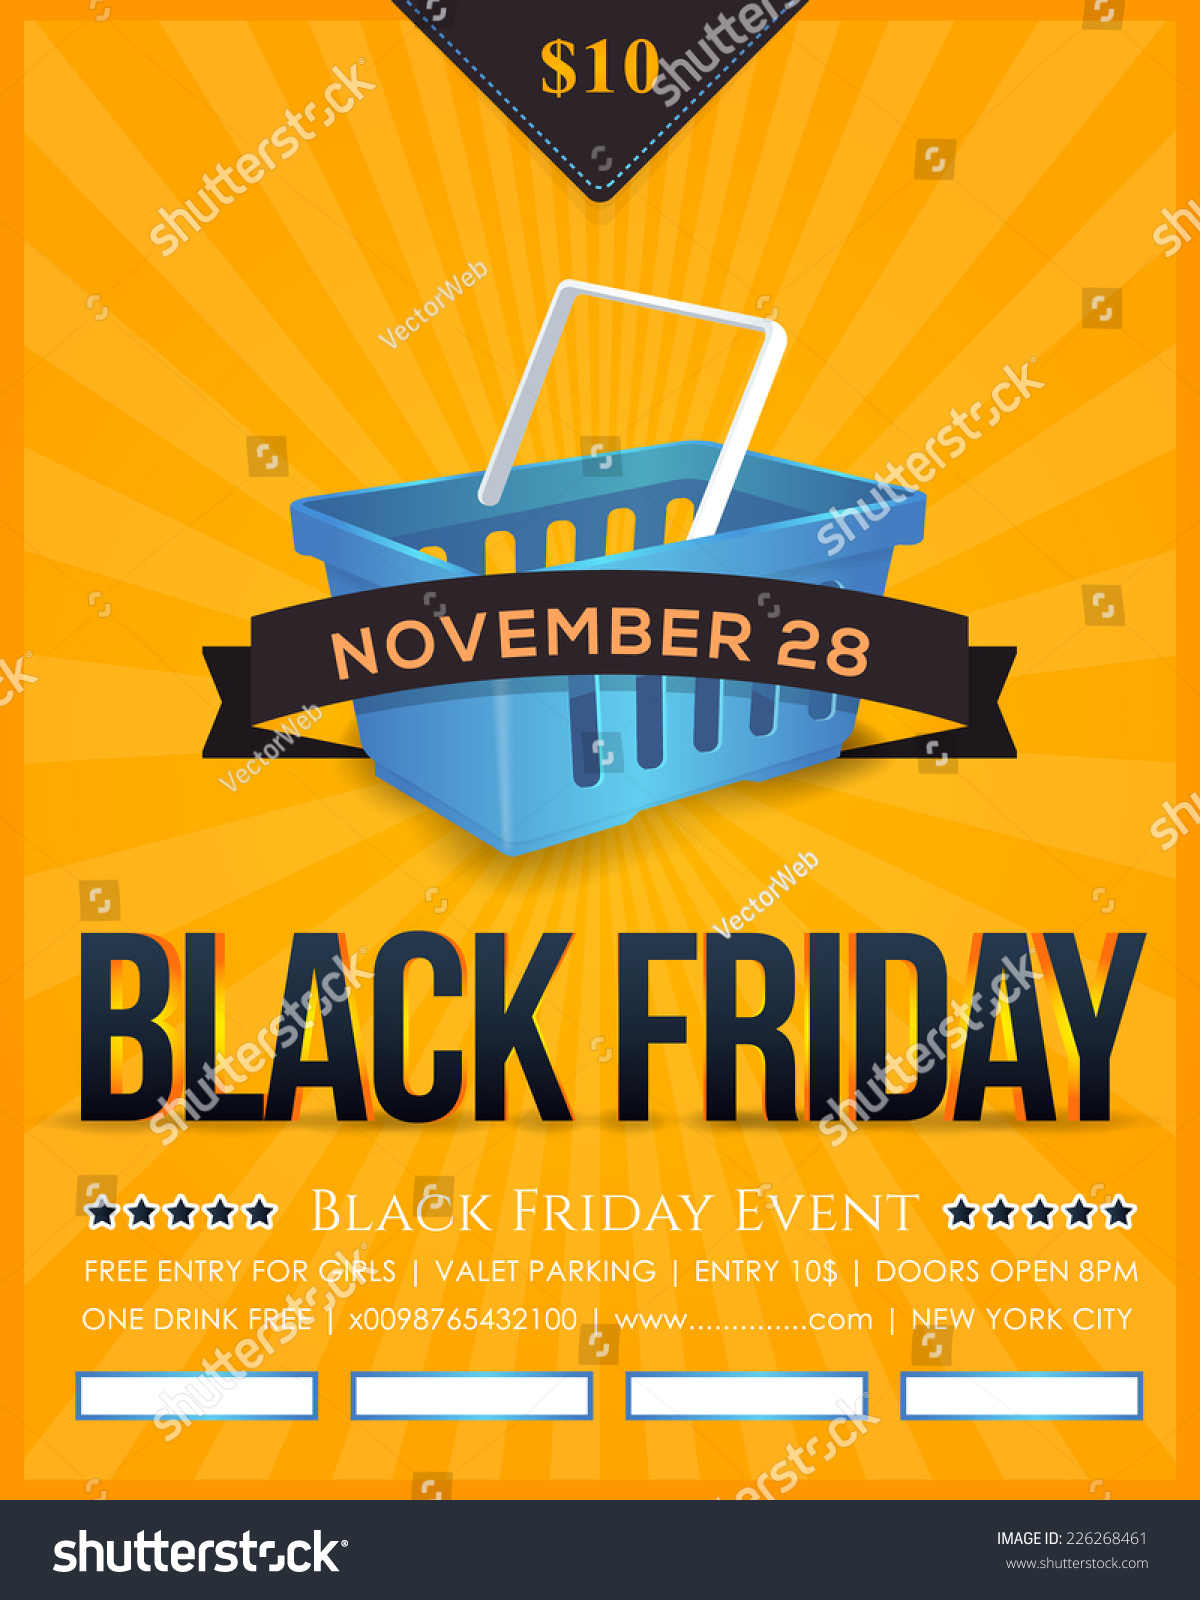 retro style black friday poster stock vector  retro style black friday poster flyer advertising template